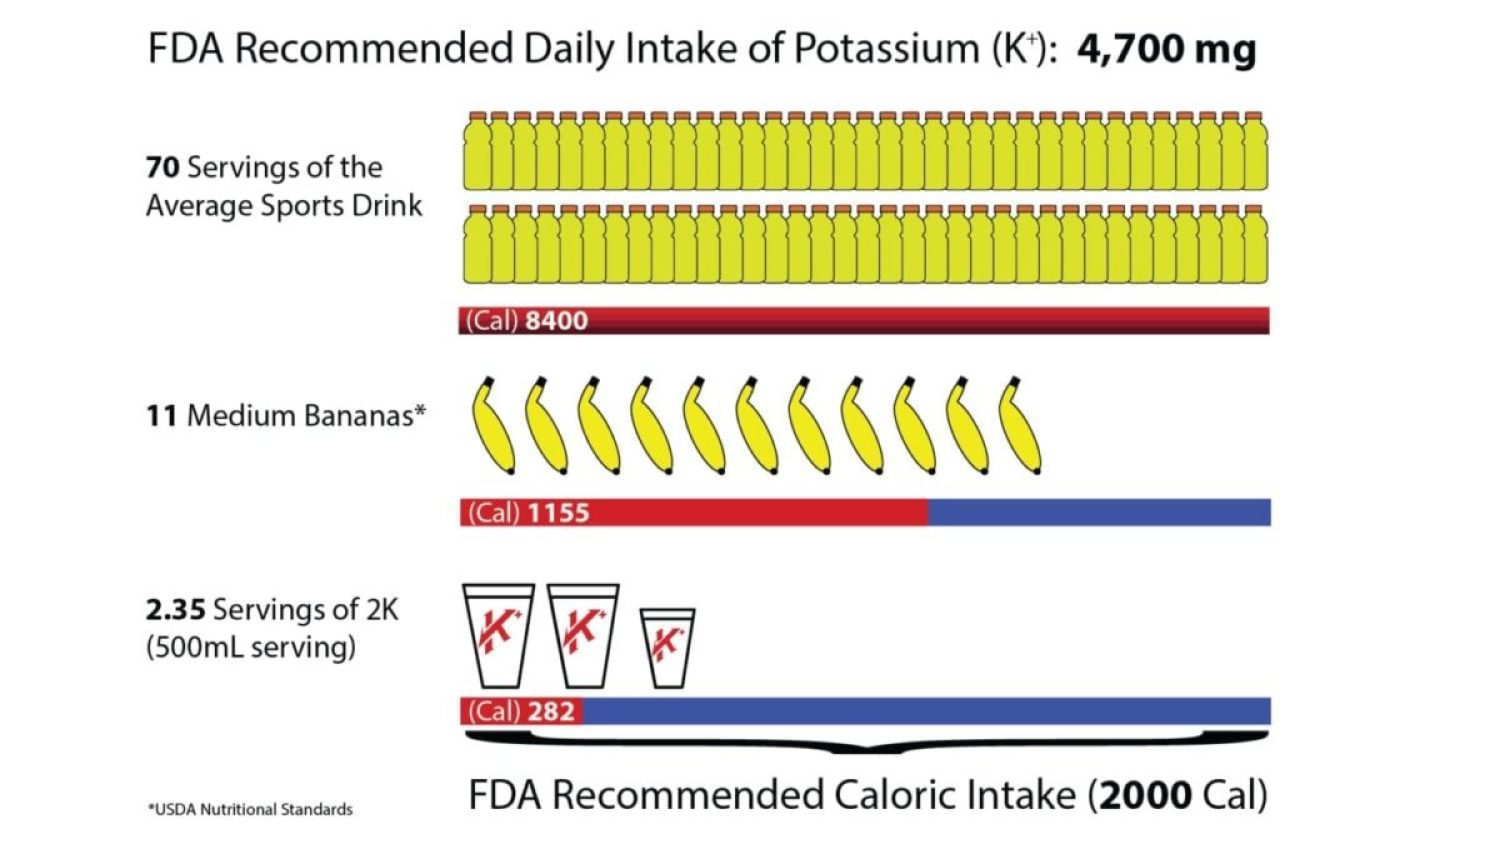 The FDA recommends individuals consume at least 4700 mg of potassium per day. Using the standard sports drink, an individual would consume about 70 servings comprising 8400 calories. Alternatively, an individual could consume 11 medium bananas comprising 1155 calories. The best option is to drink 2.35 servings of Krampade comprising just 282 calories. Figure from Krampade, copyright 2020.